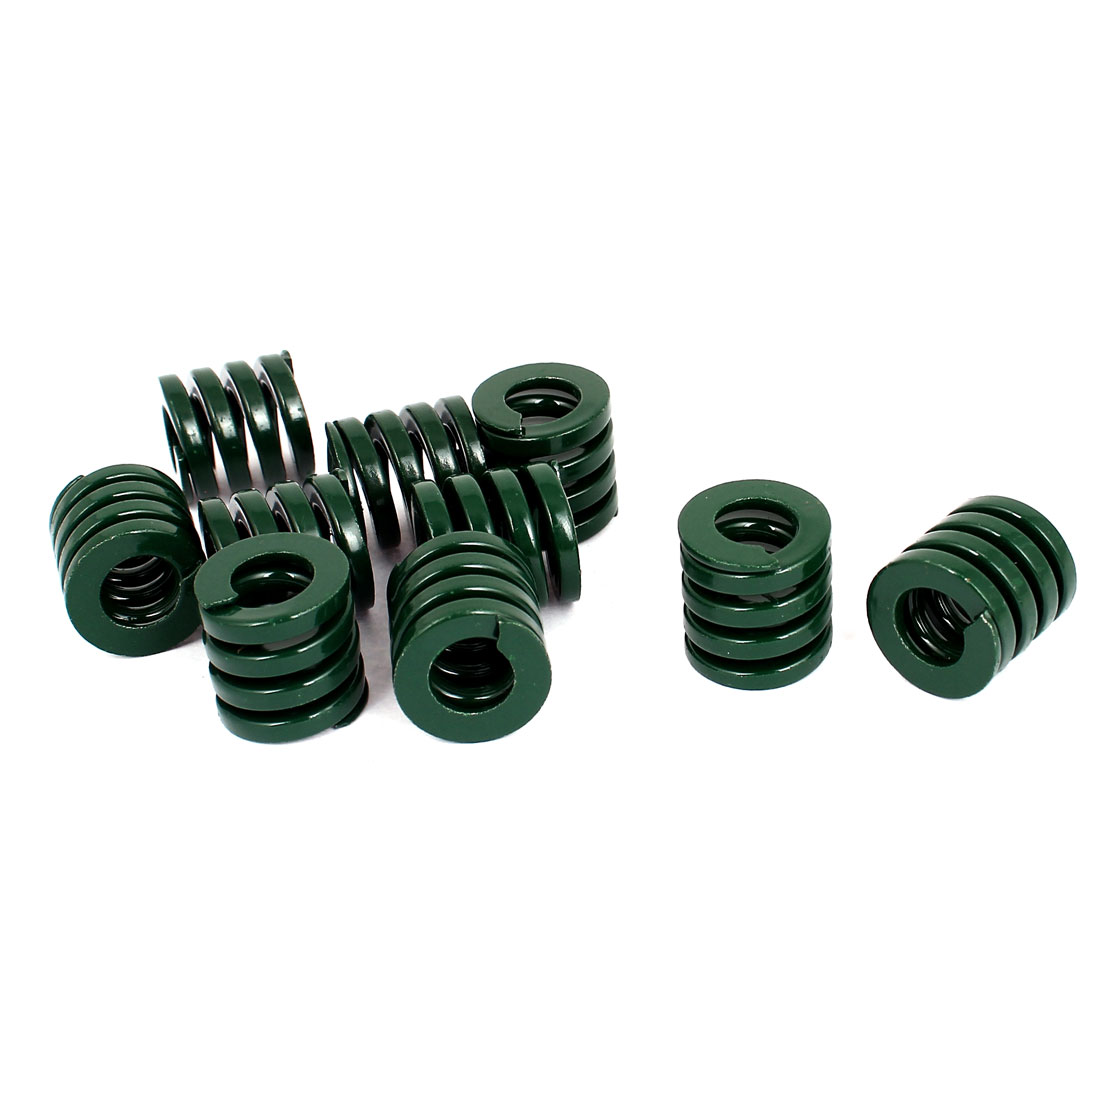 20mm OD 20mm Long Heavy Load Stamping Compression Mold Die Spring Green 10pcs